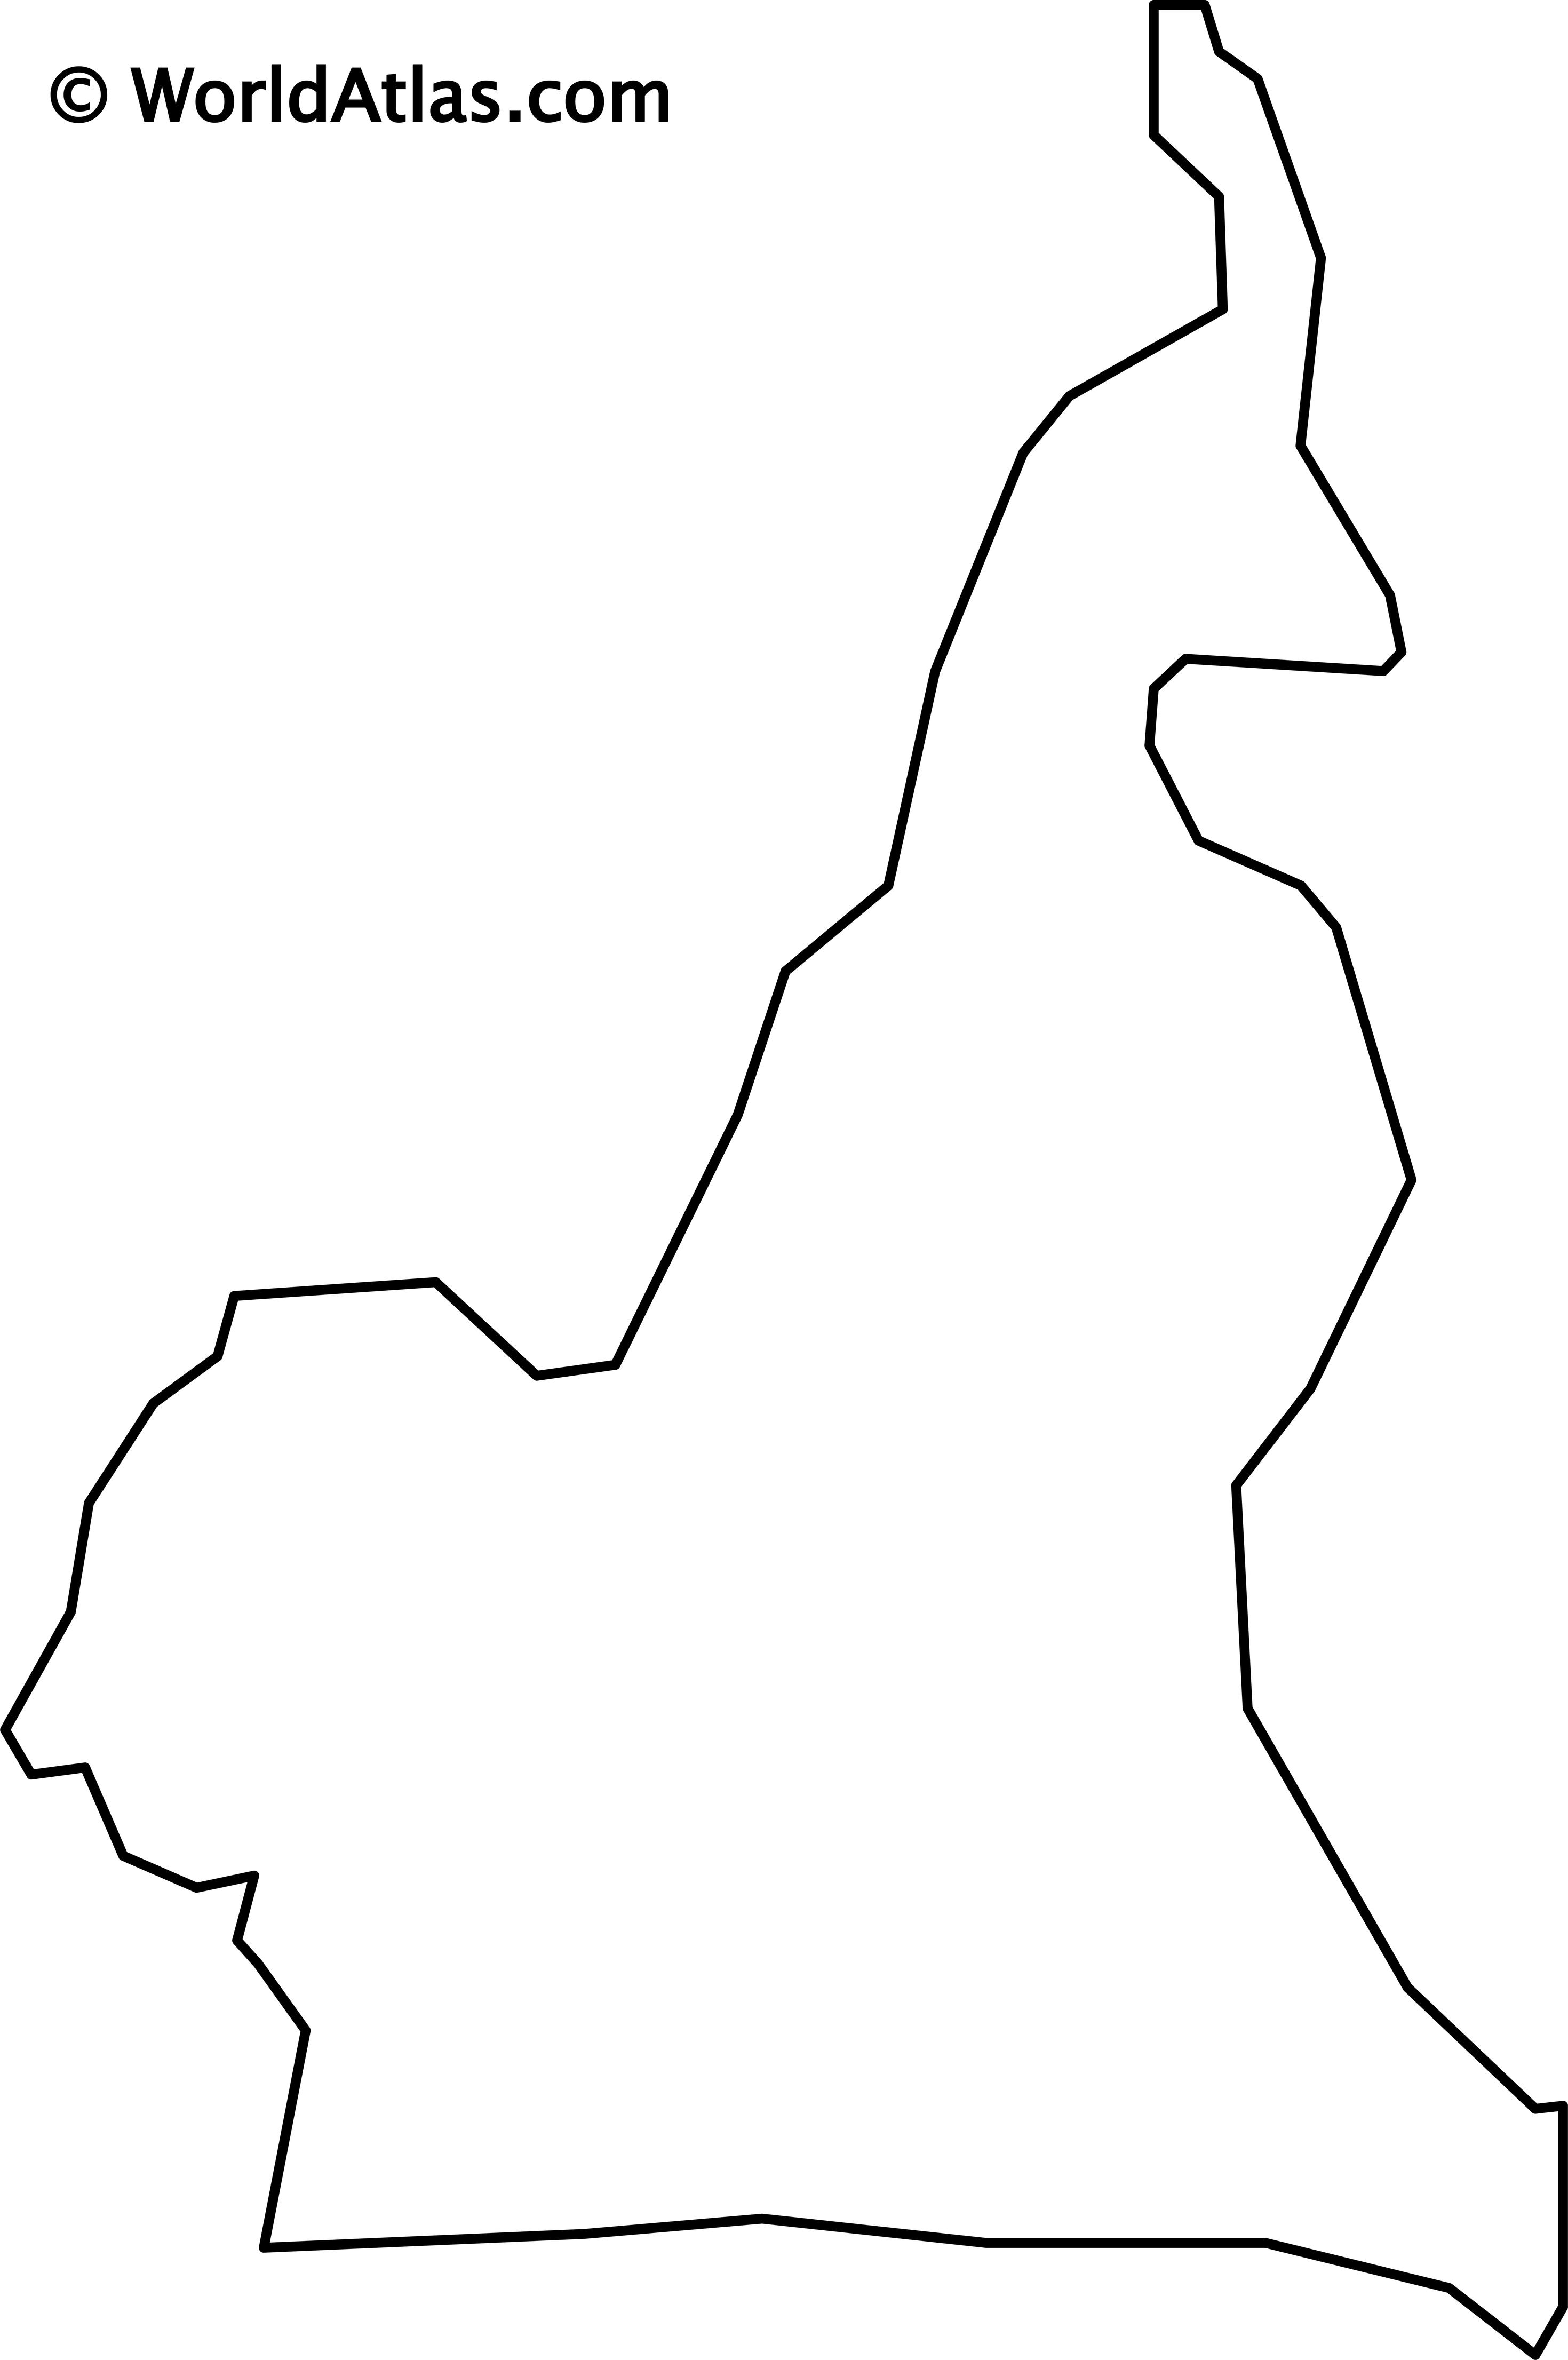 Blank Outline Map of Cameroon